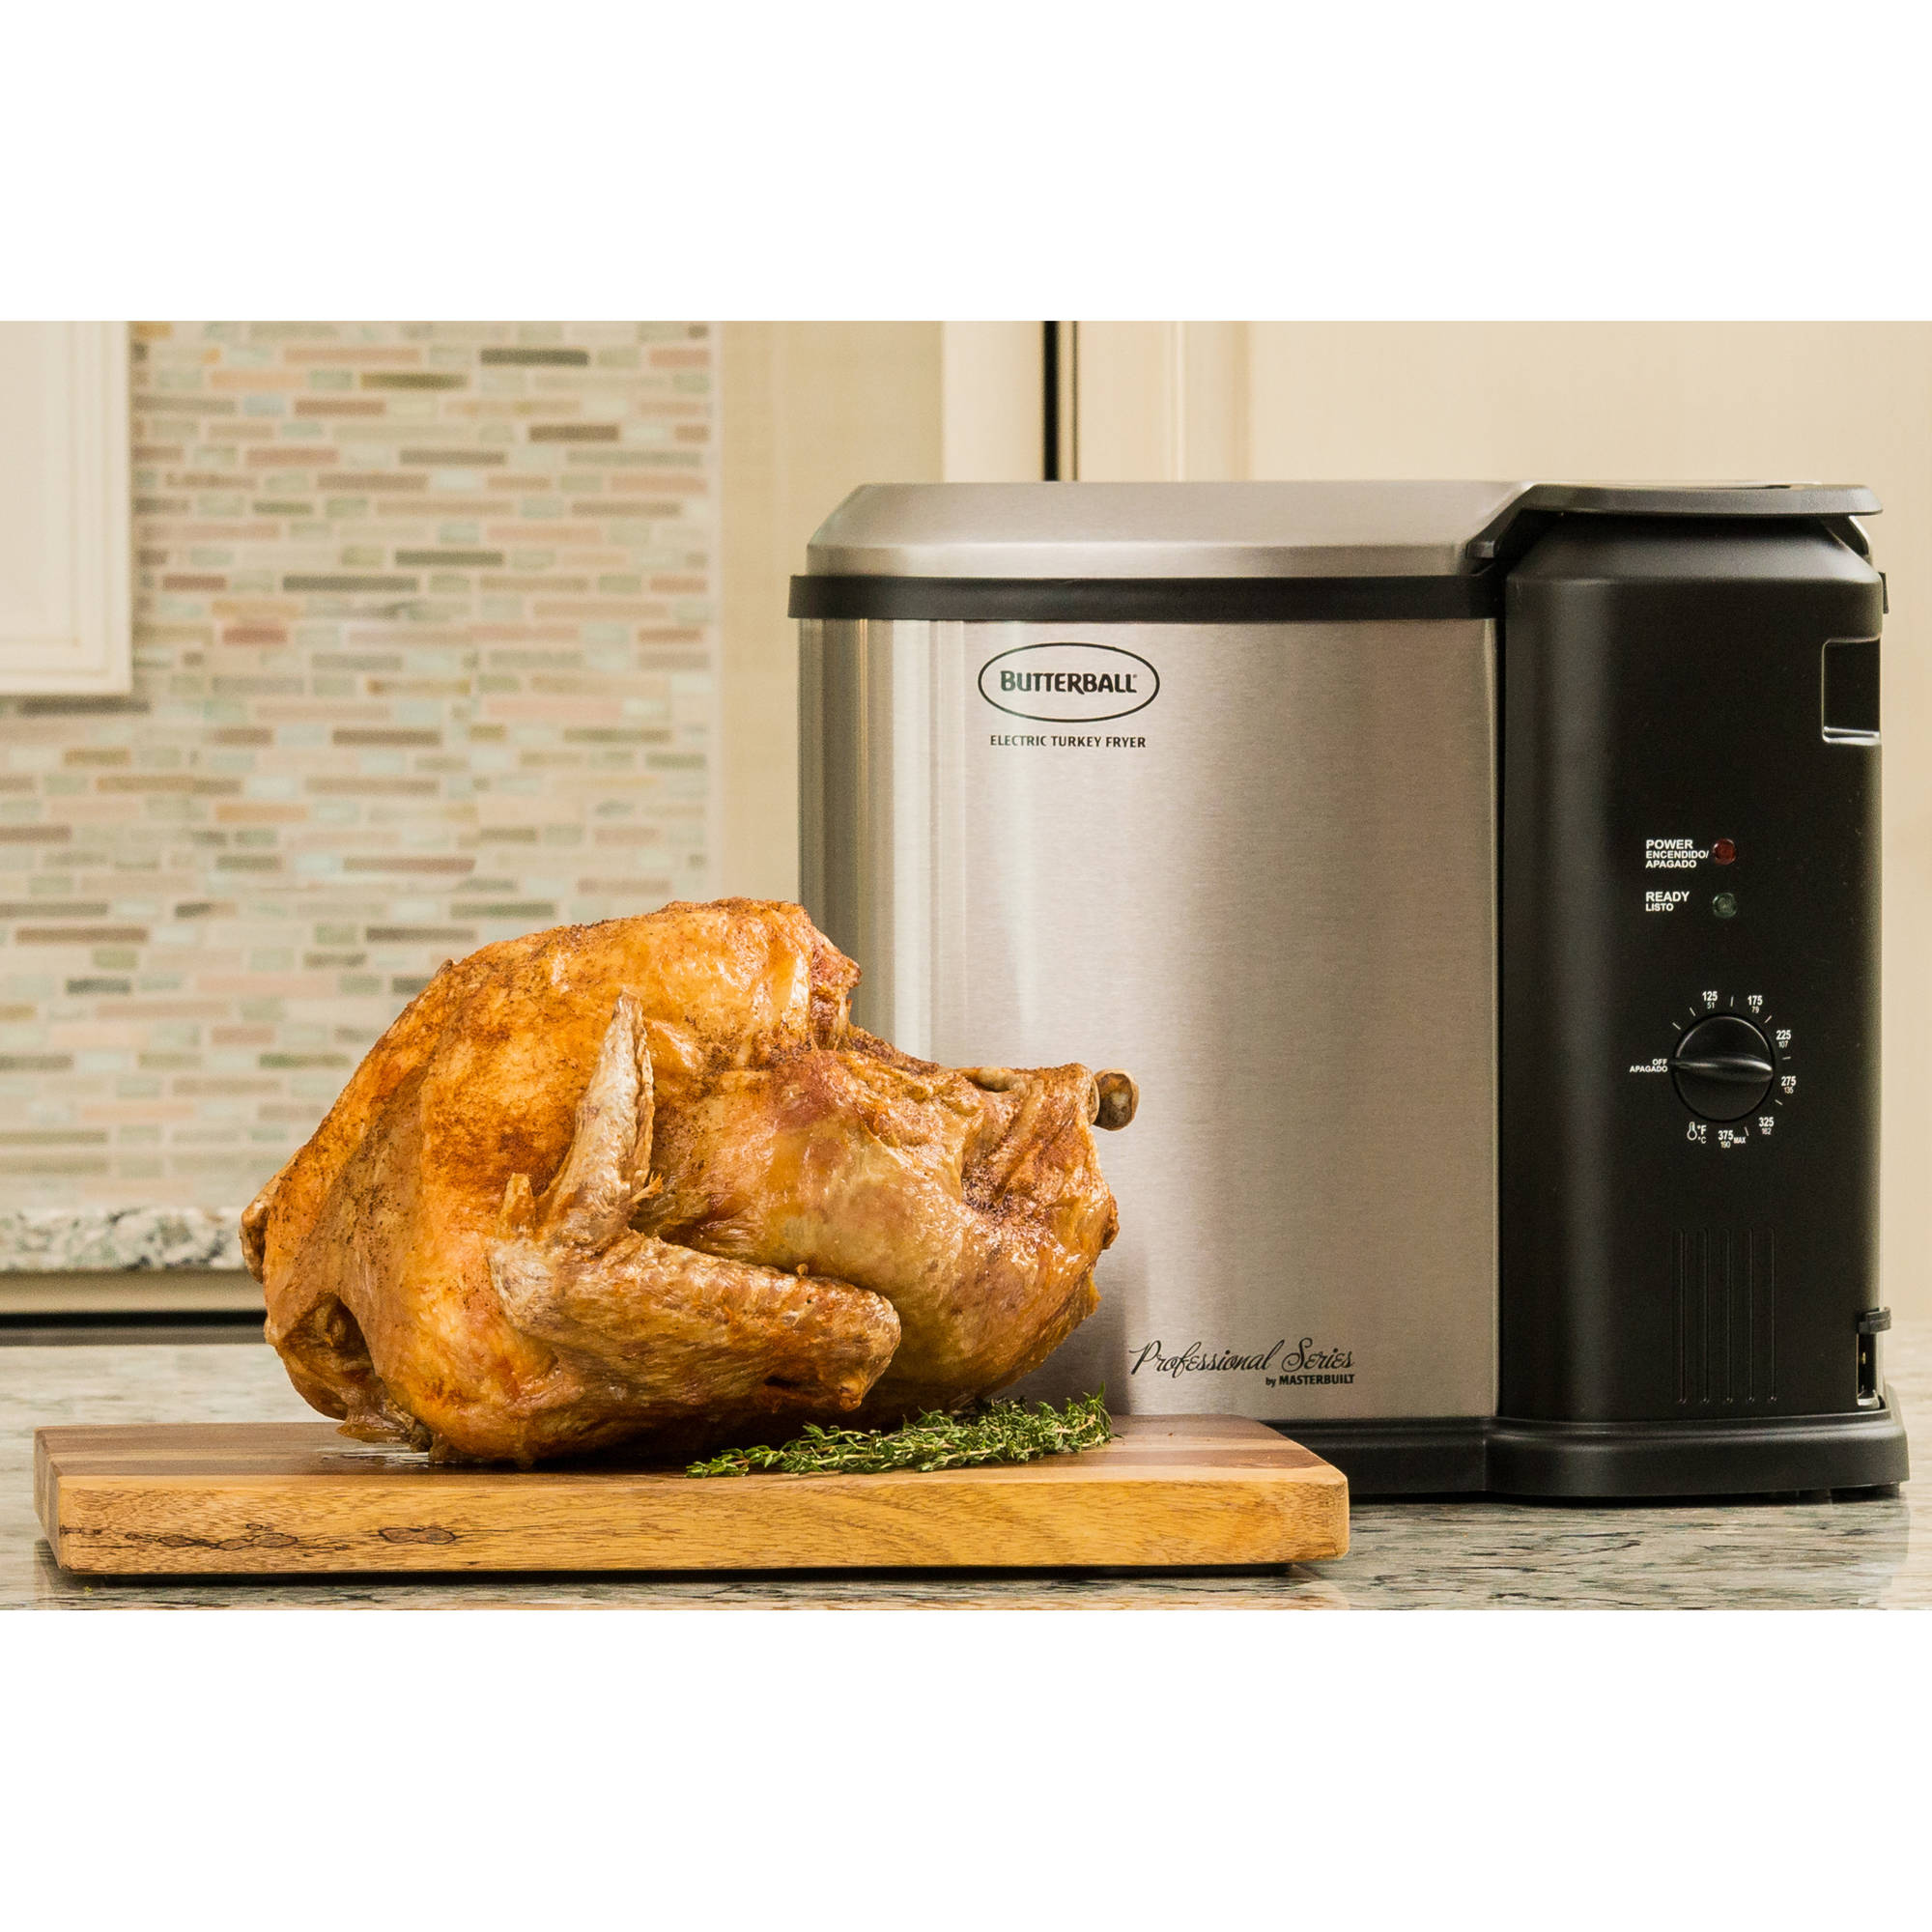 Butterball 23010115 8L Electric Fryer Large